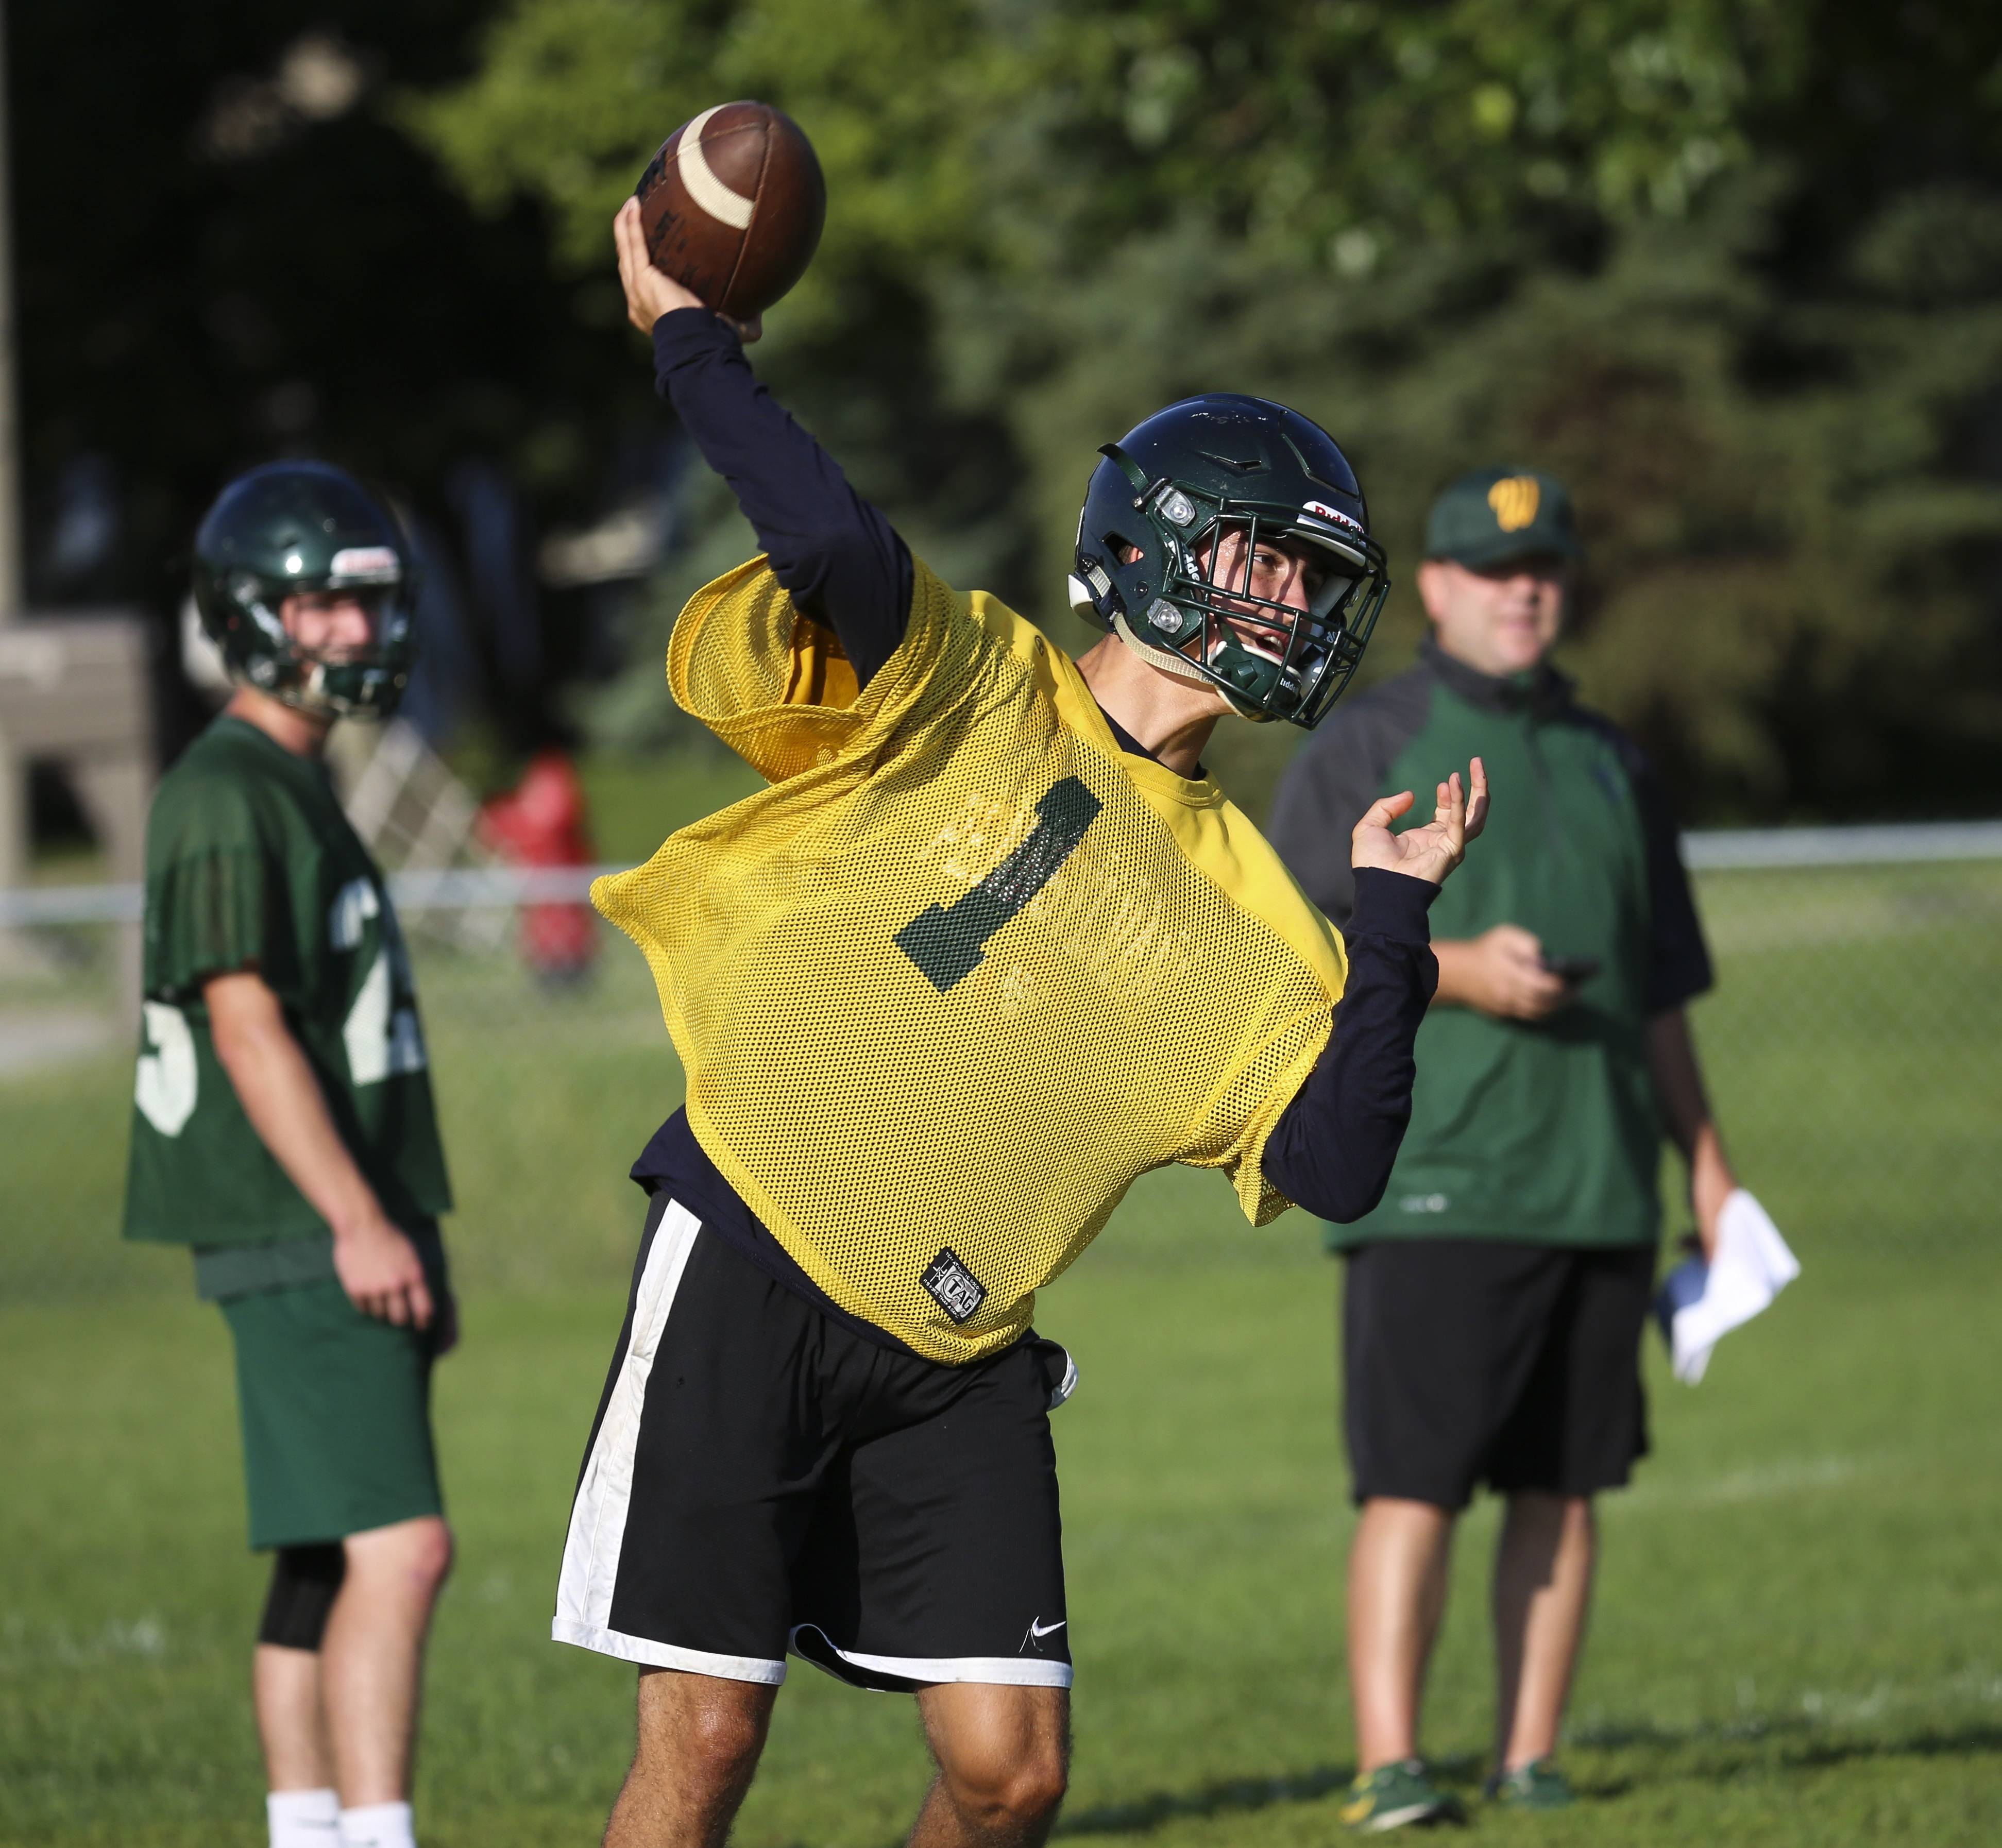 Quarterback Tanner Westwood on the first day of football practice at Waubonsie Valley High School in Aurora on Monday.